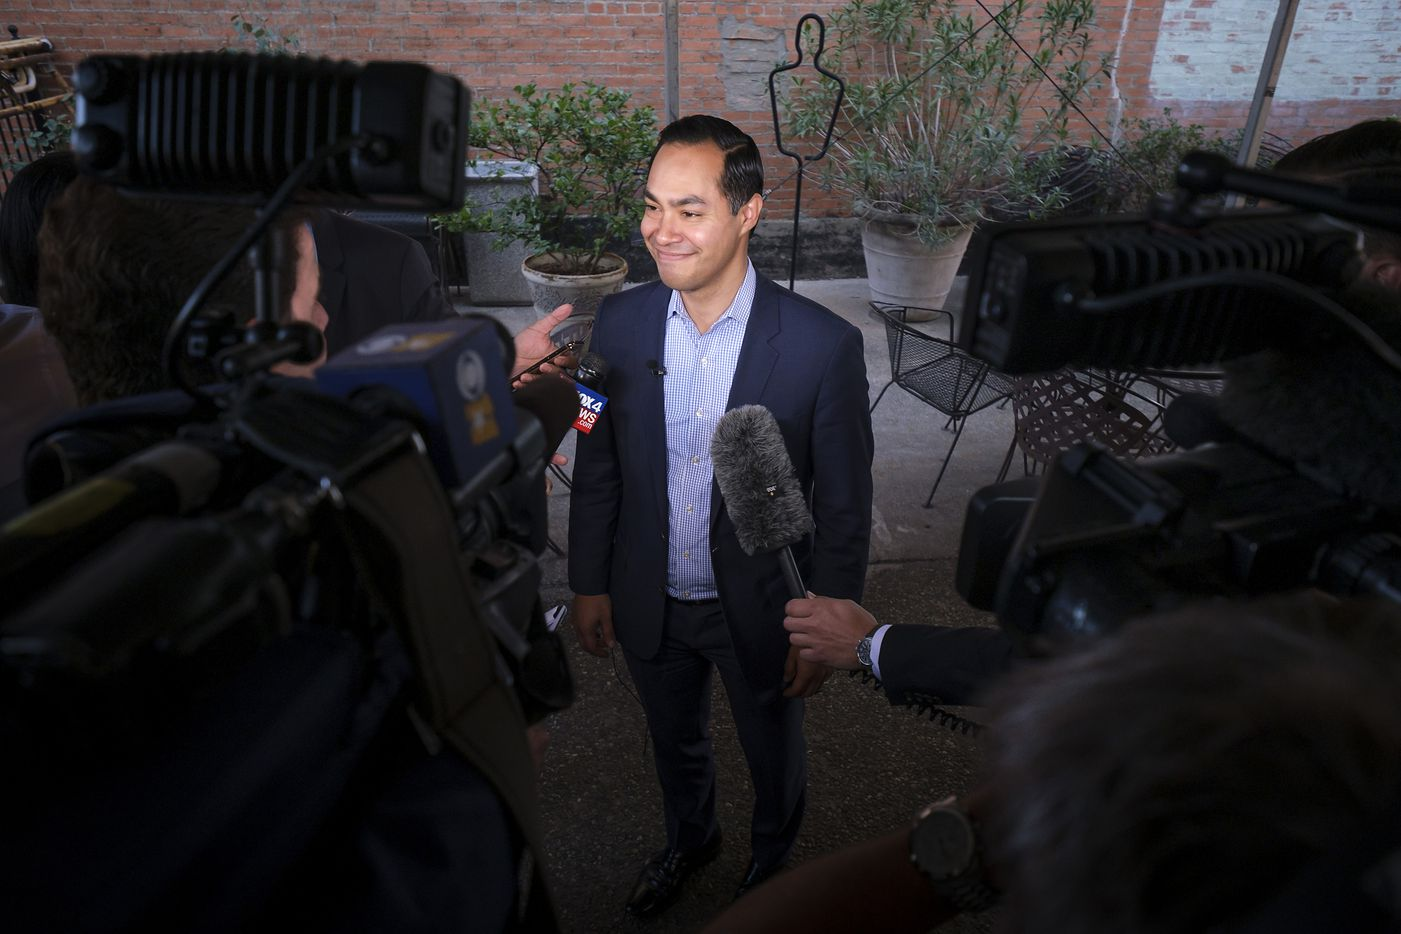 Presidential candidate Julian Castro addresses reporters before a campaign event at St. Pete's Dancing Marlin in Deep Ellum on Tuesday, March 19, 2019, in Dallas. The former San Antonio Mayor met with Democrats  in Dallas on Tuesday after campaigning for the Democratic Party nomination in New Hampshire on Monday. (Smiley N. Pool/The Dallas Morning News)